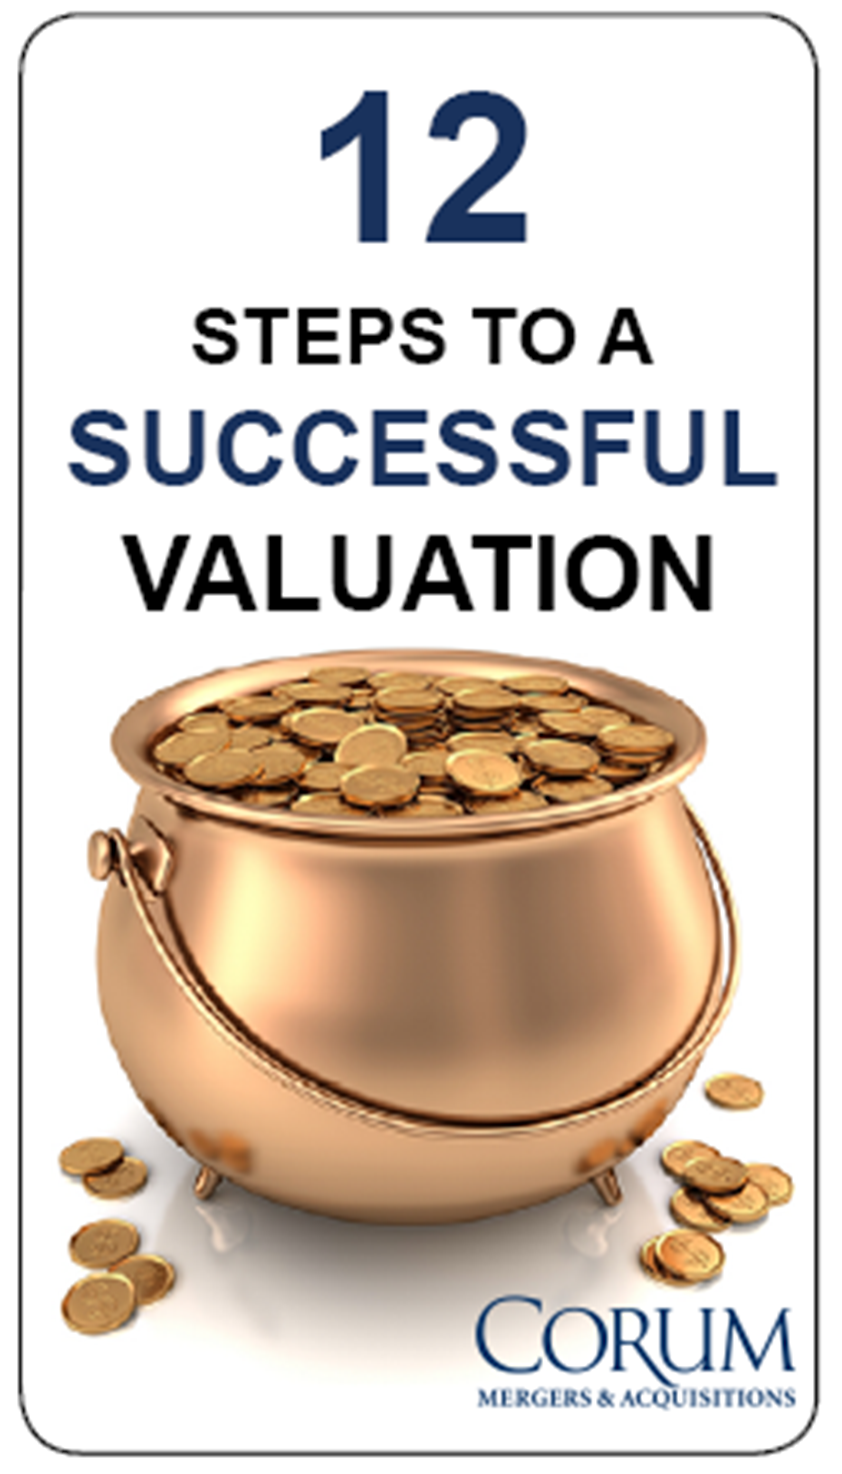 Tech M&A Monthly: 12 Tips for a Successful Valuation # 11 & 12